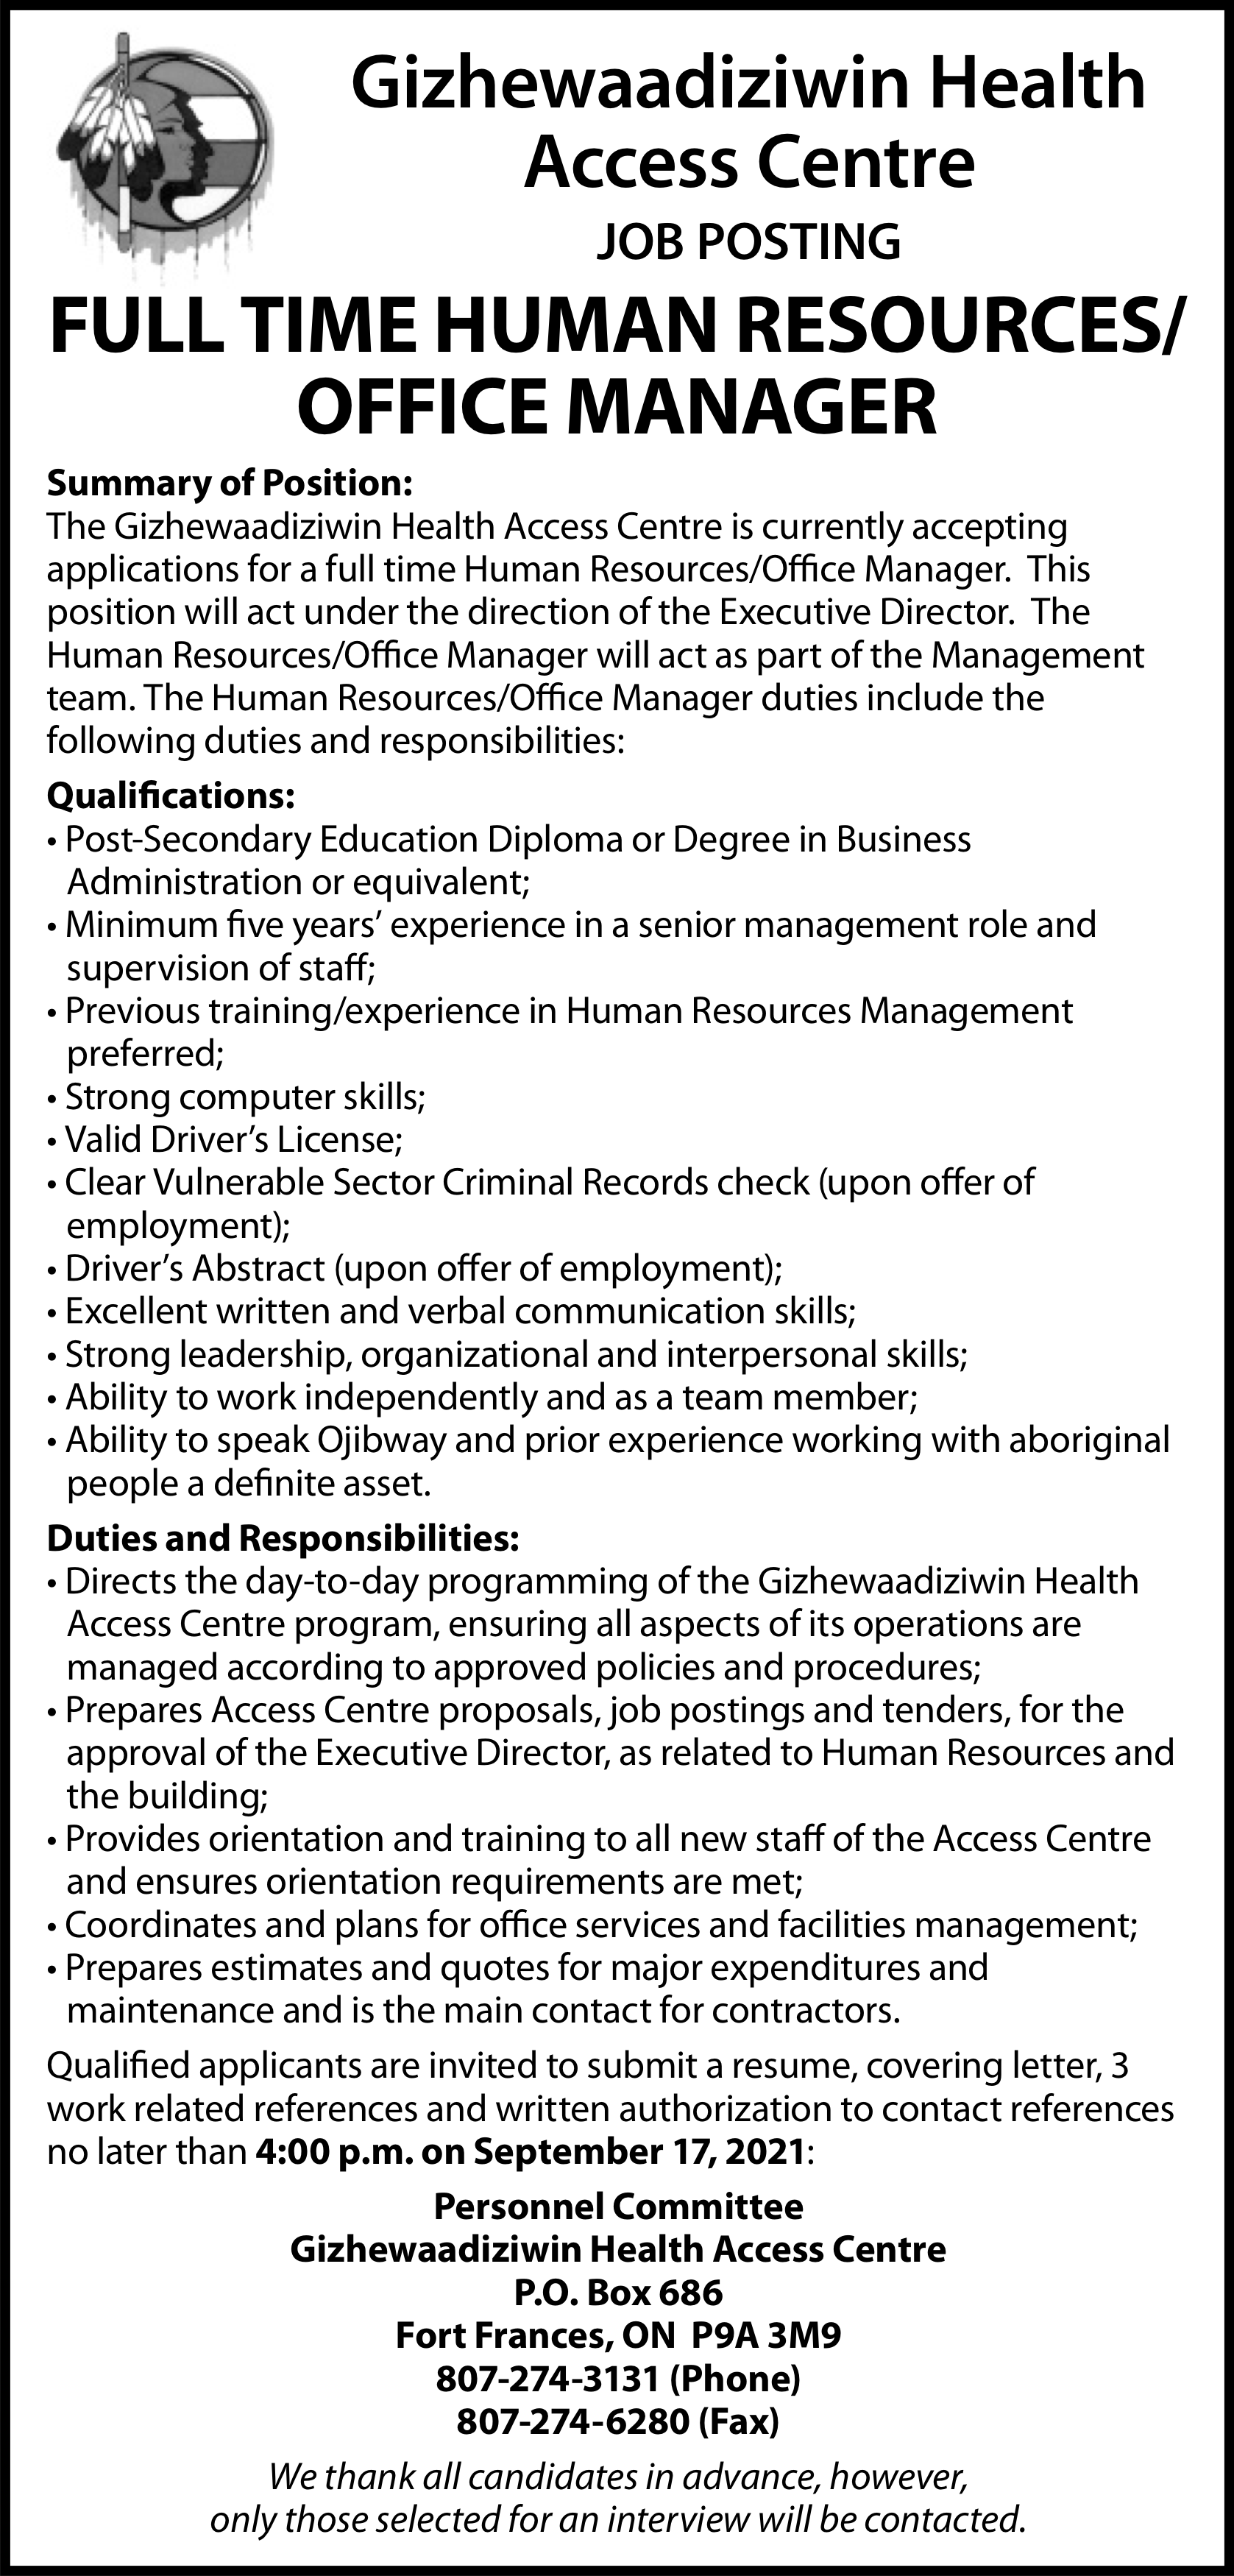 Full Time Human Resources/Office Manager